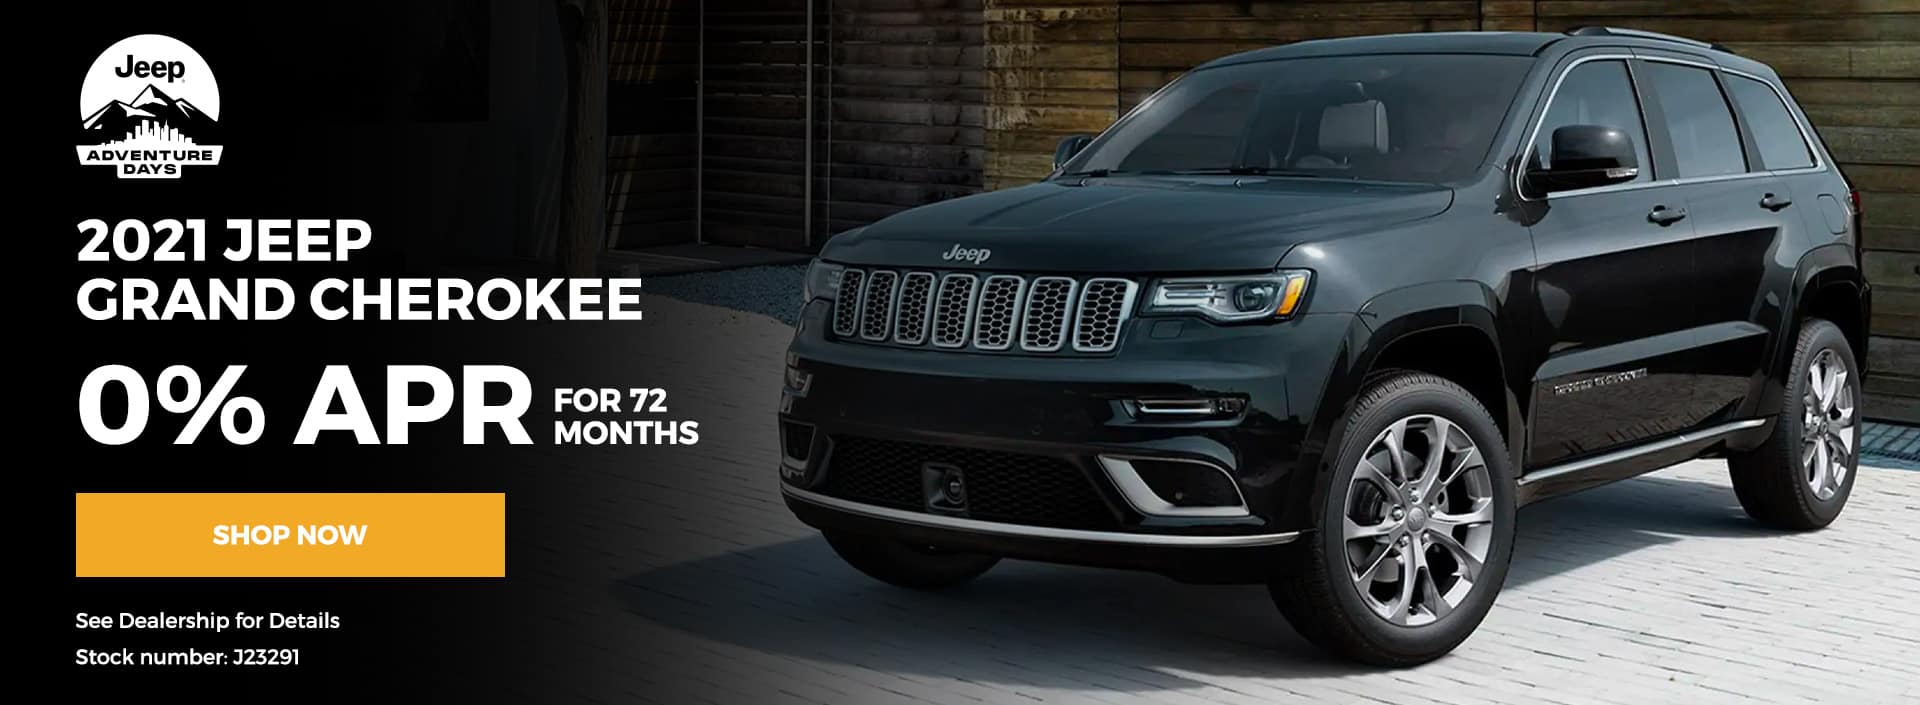 2021 Jeep Grand Cherokee 0% for 72 months